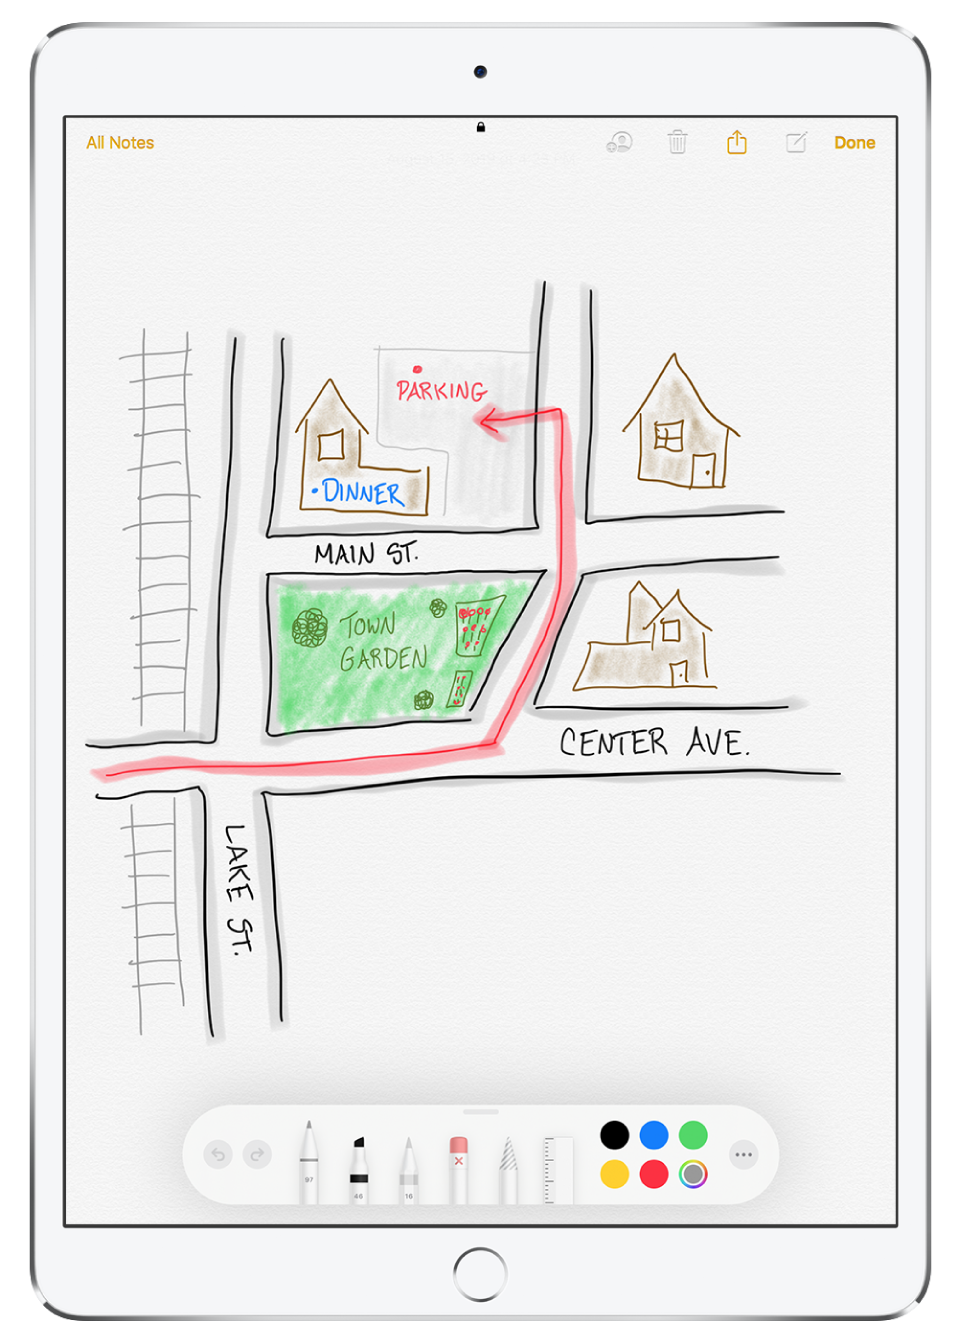 A drawing of a neighborhood inside a note. The drawing includes labeled streets and a red arrow directing to available parking. Along the bottom of the screen is the Markup toolbar with a writing utensil and a custom color selected.